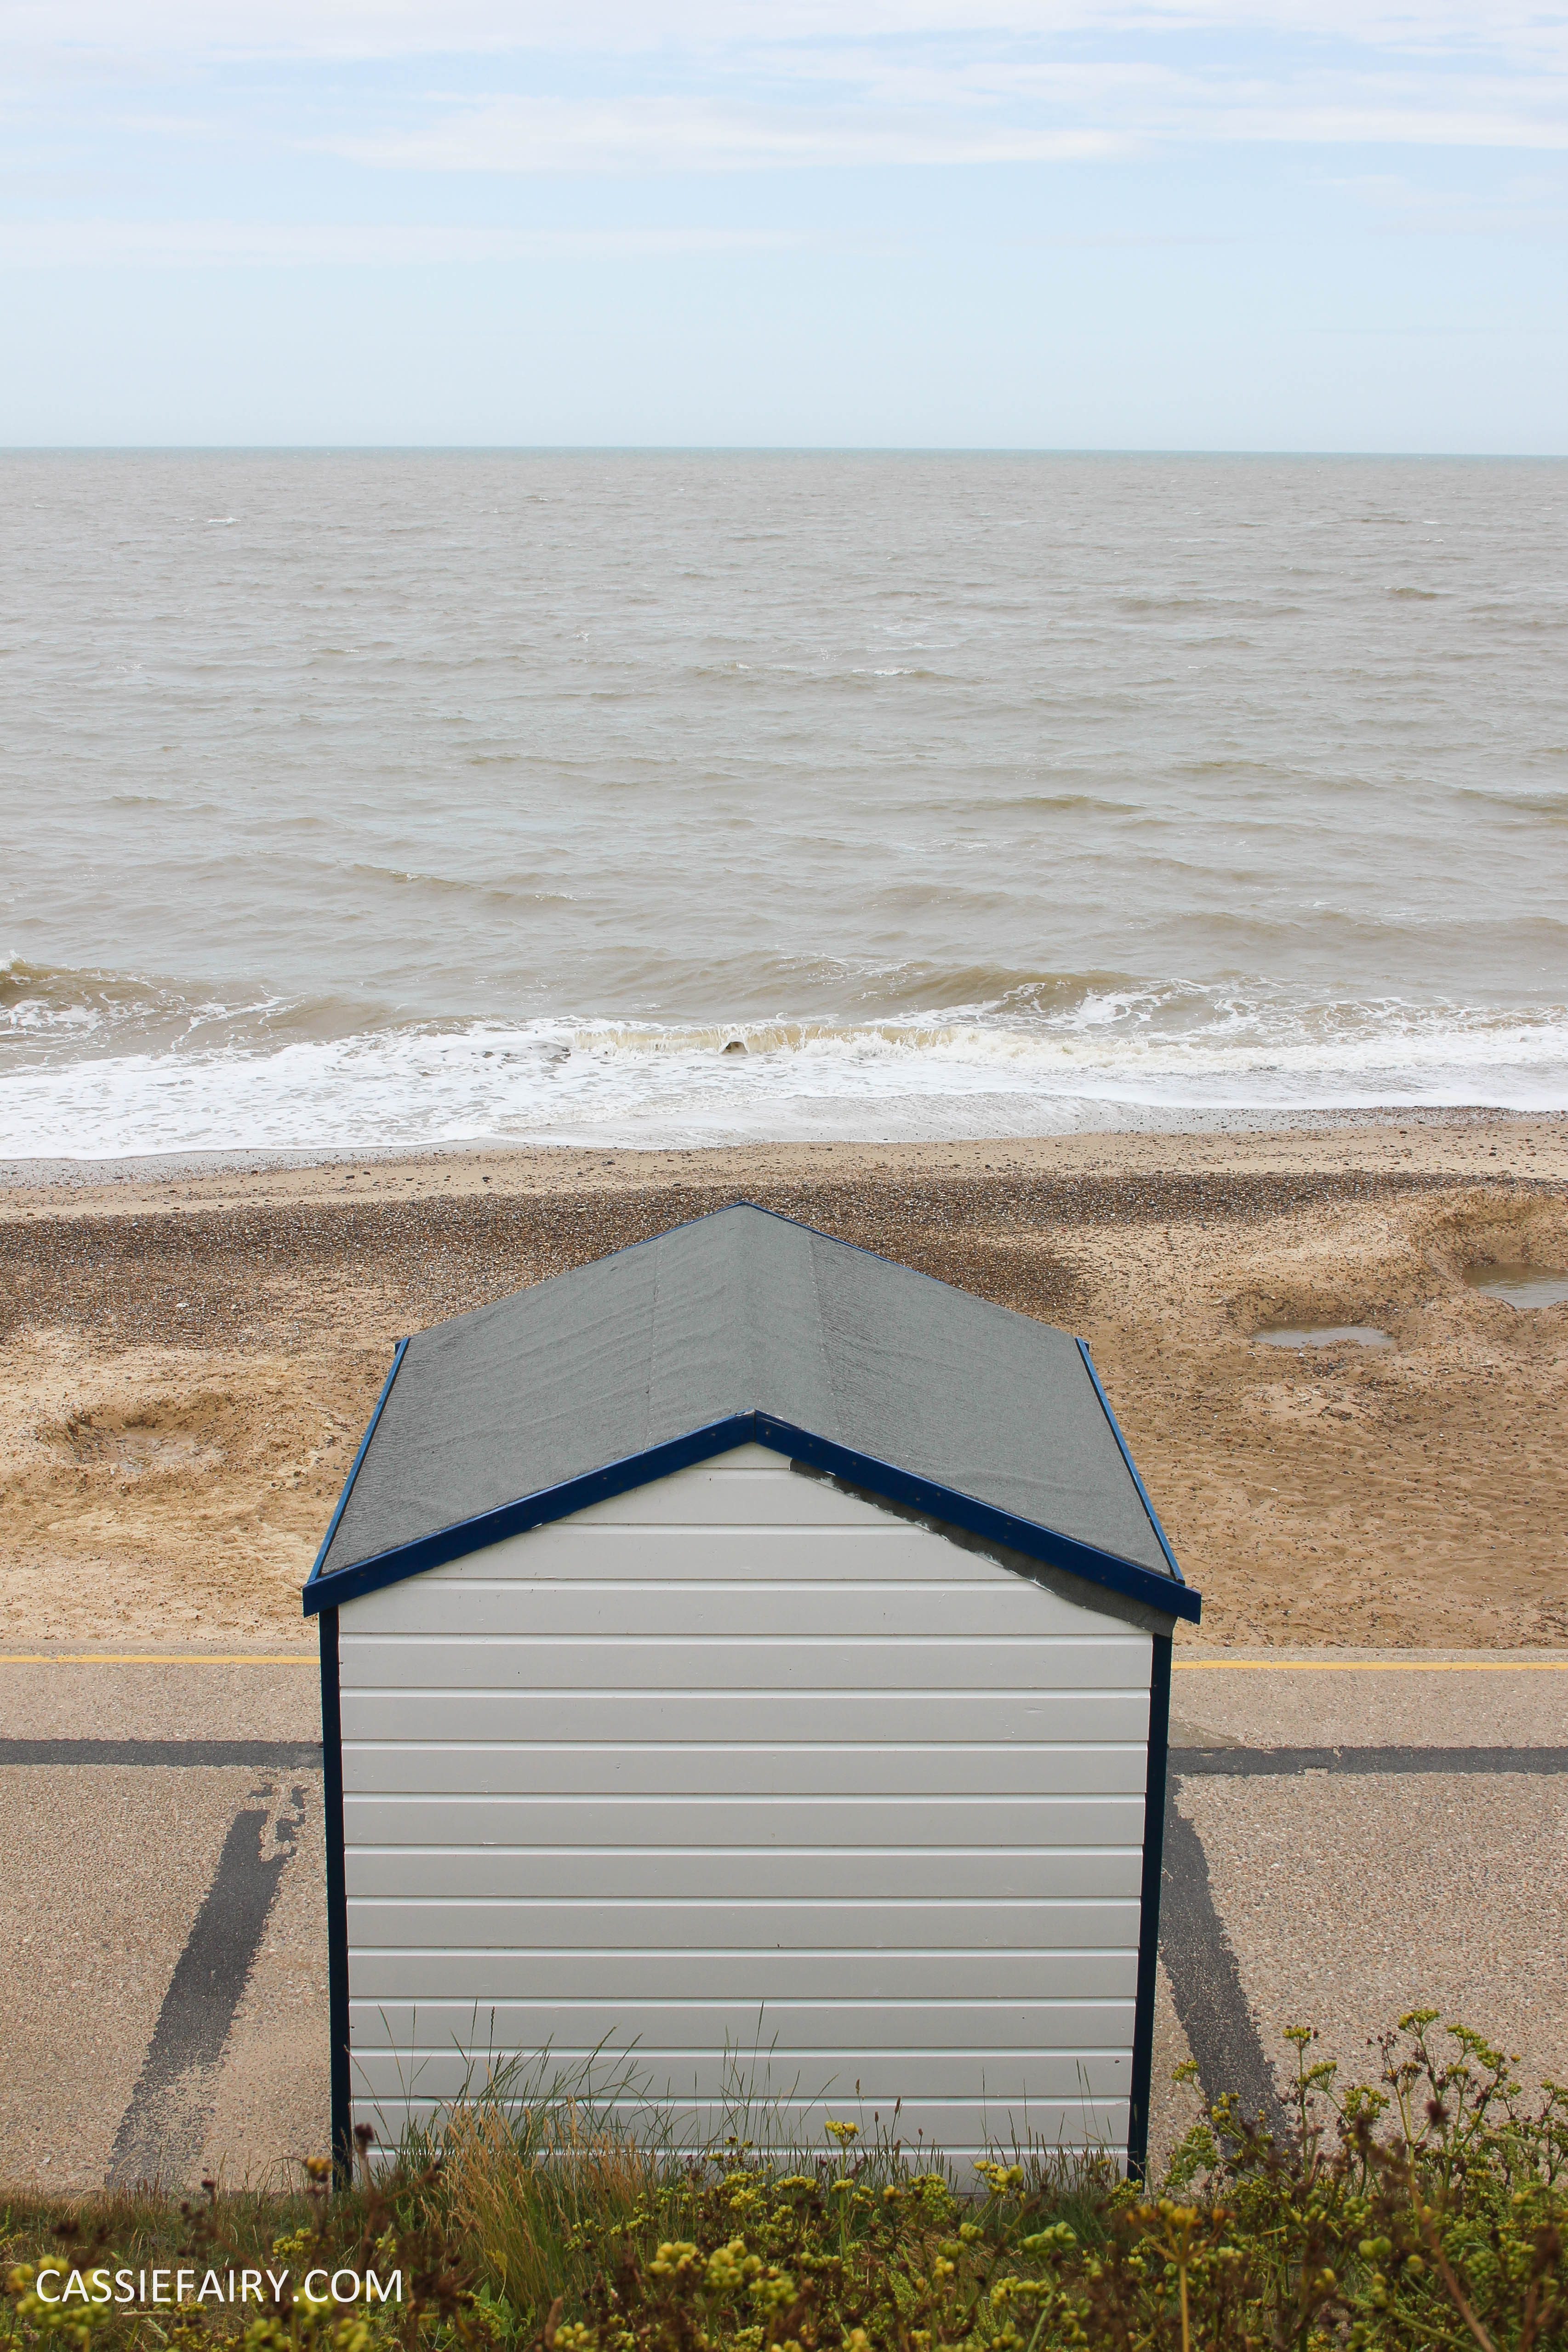 southwold pier attraction suffolk seaside travel guide-12